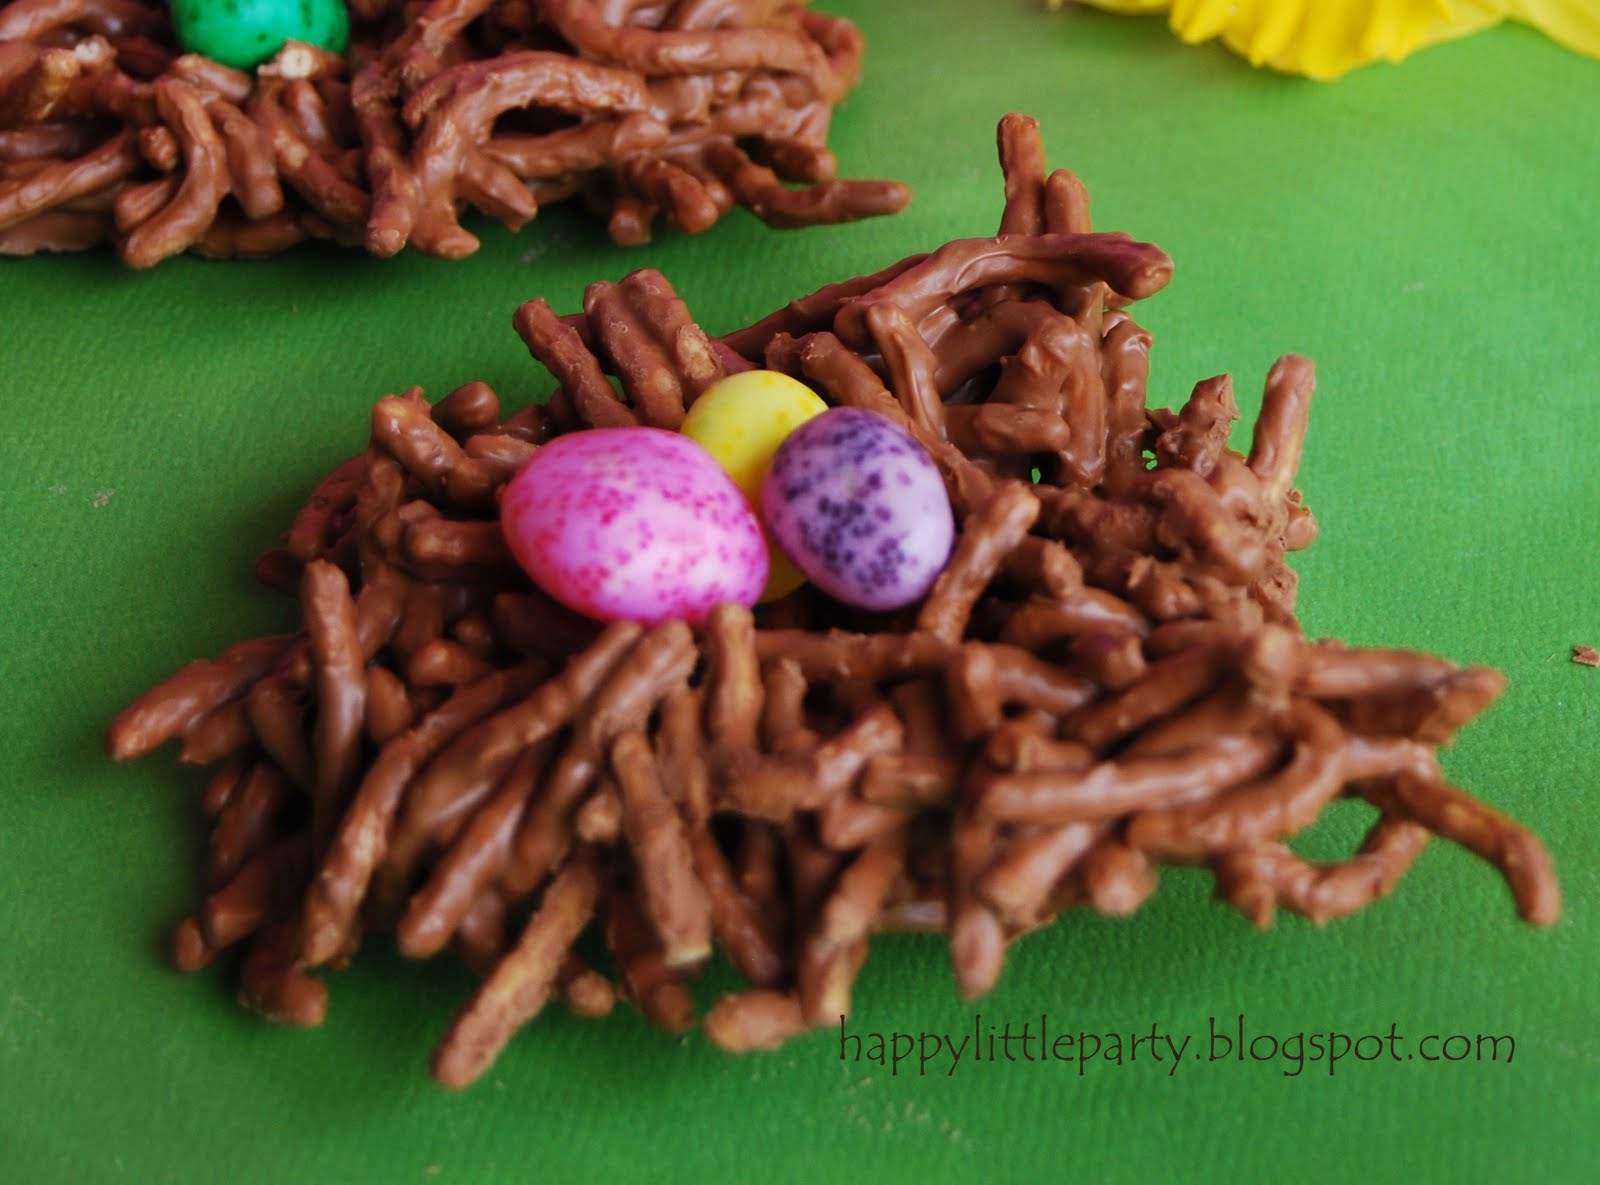 Happy little party kid food craft edible spring bird nests for Food crafts for preschoolers